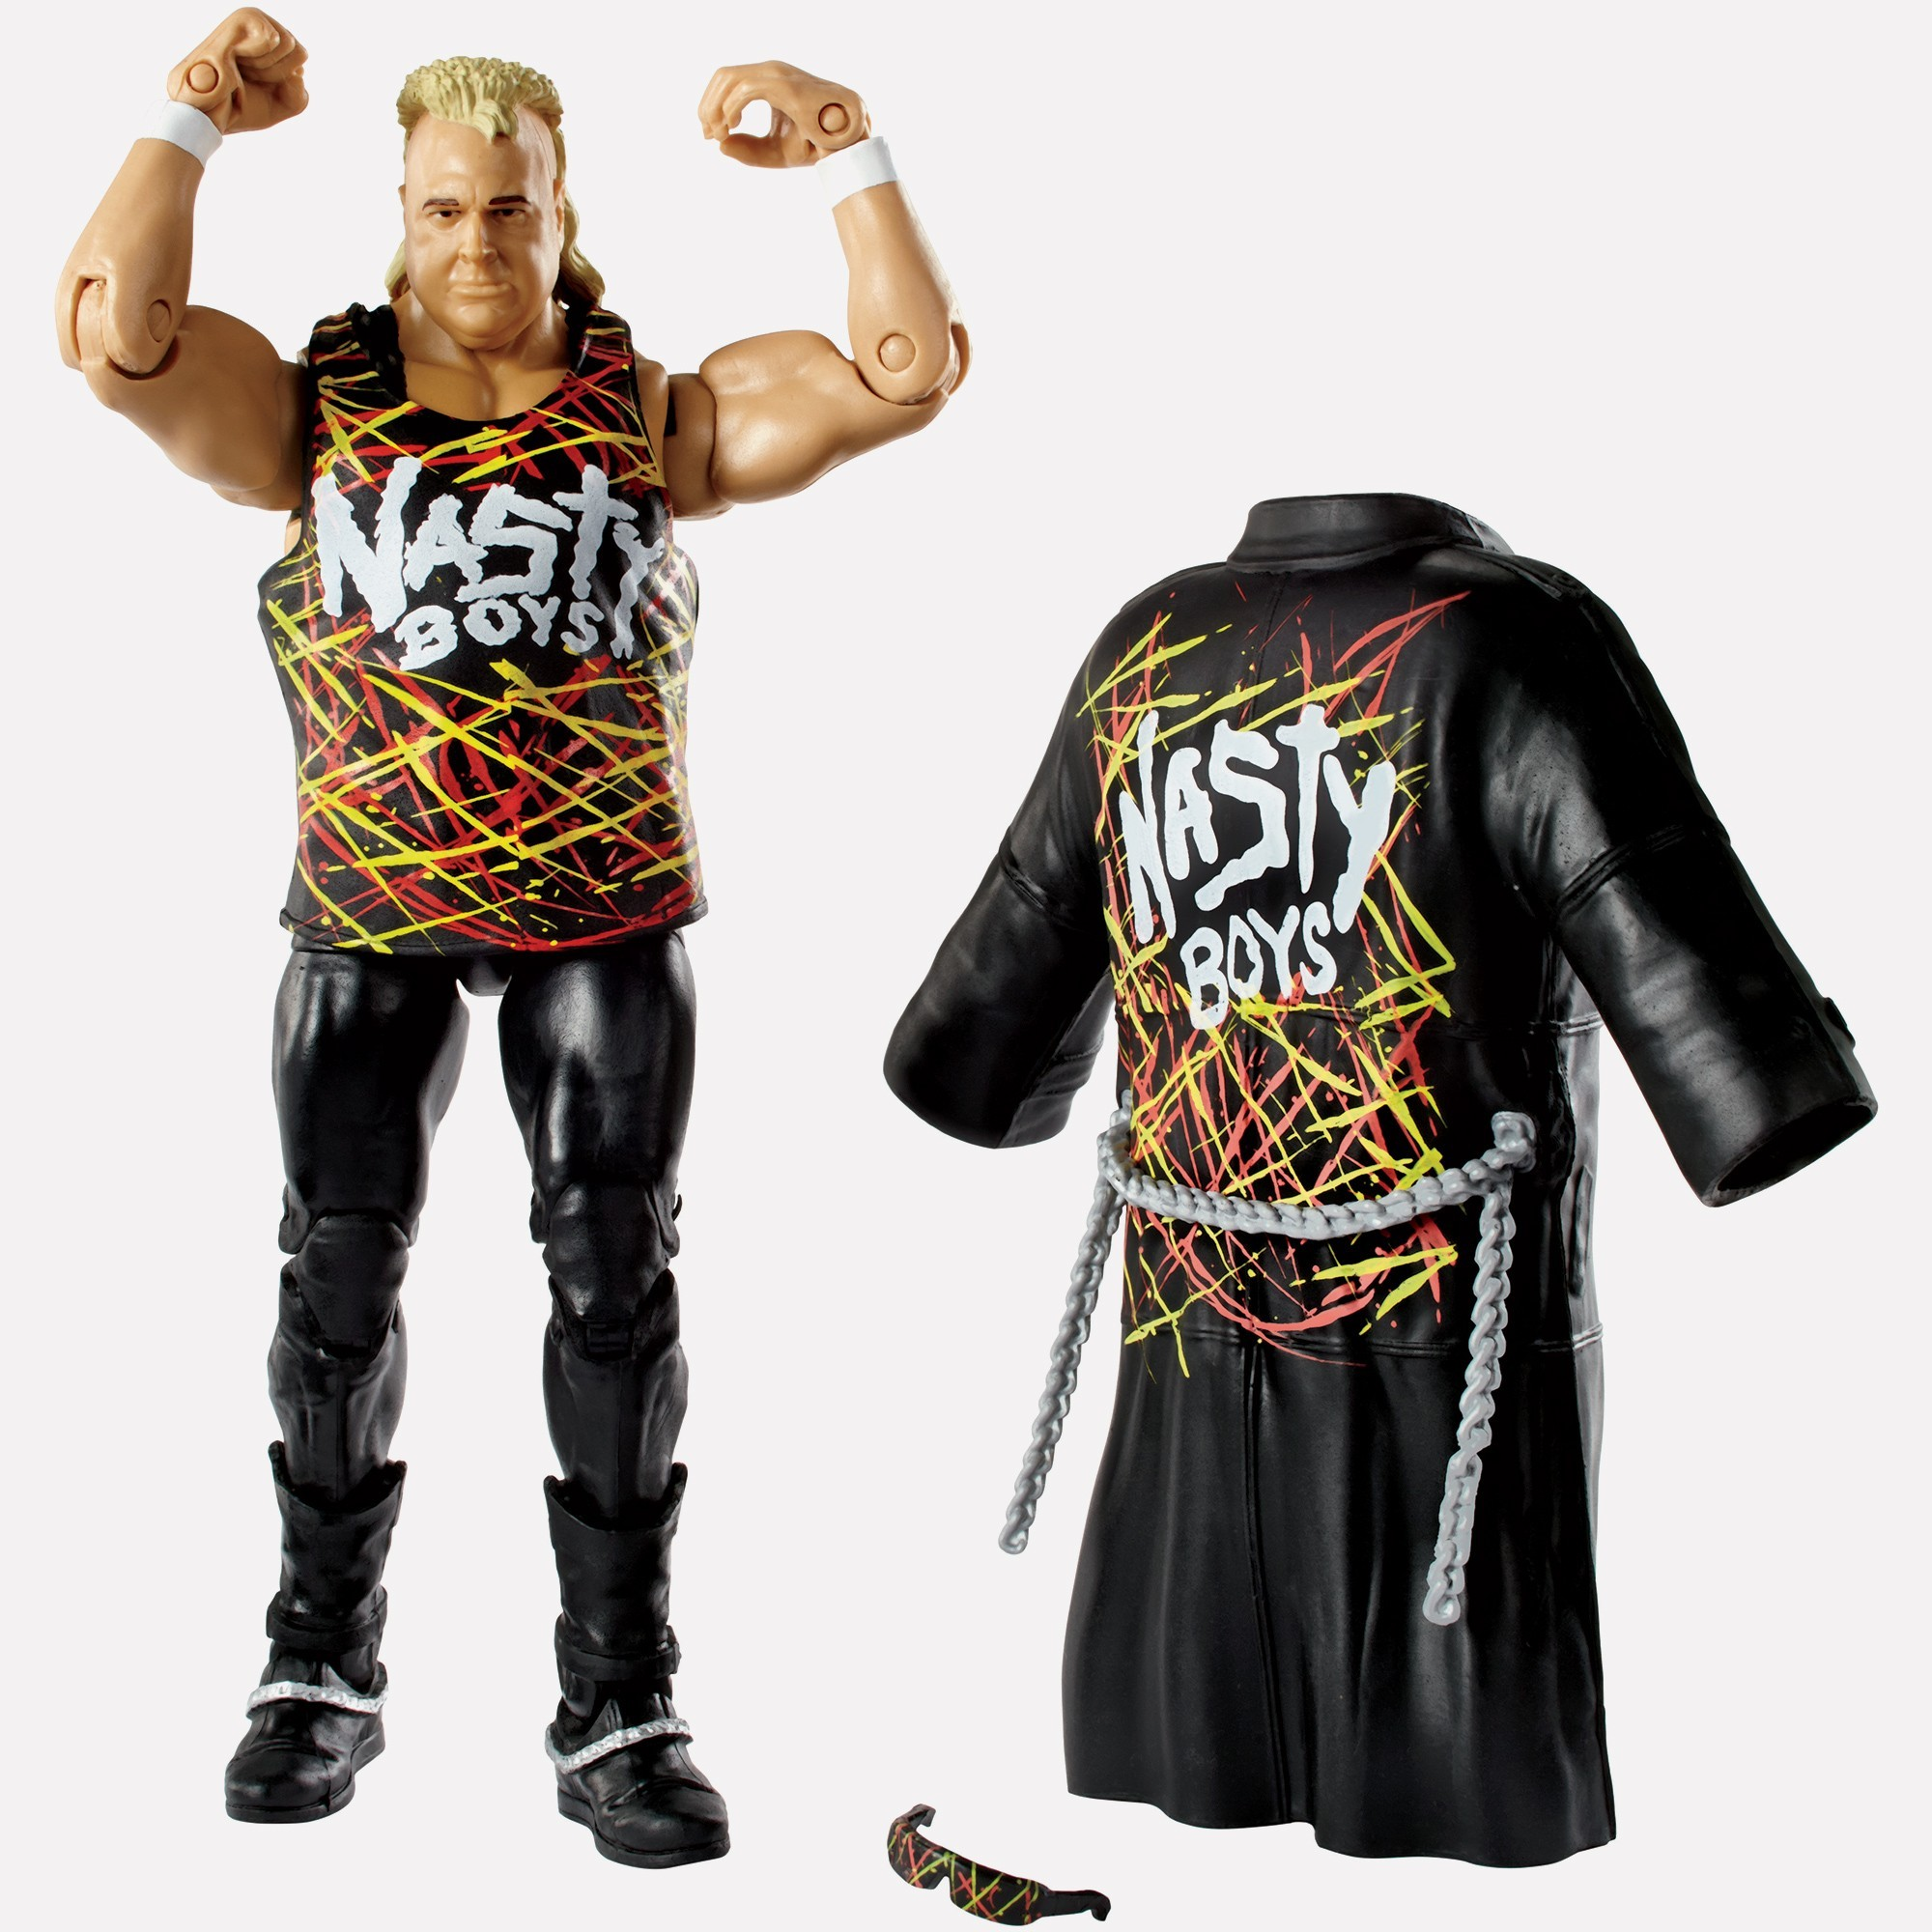 Wwe Toys For Boys Christmas : Nasty boy brian knobbs wwe elite collection series